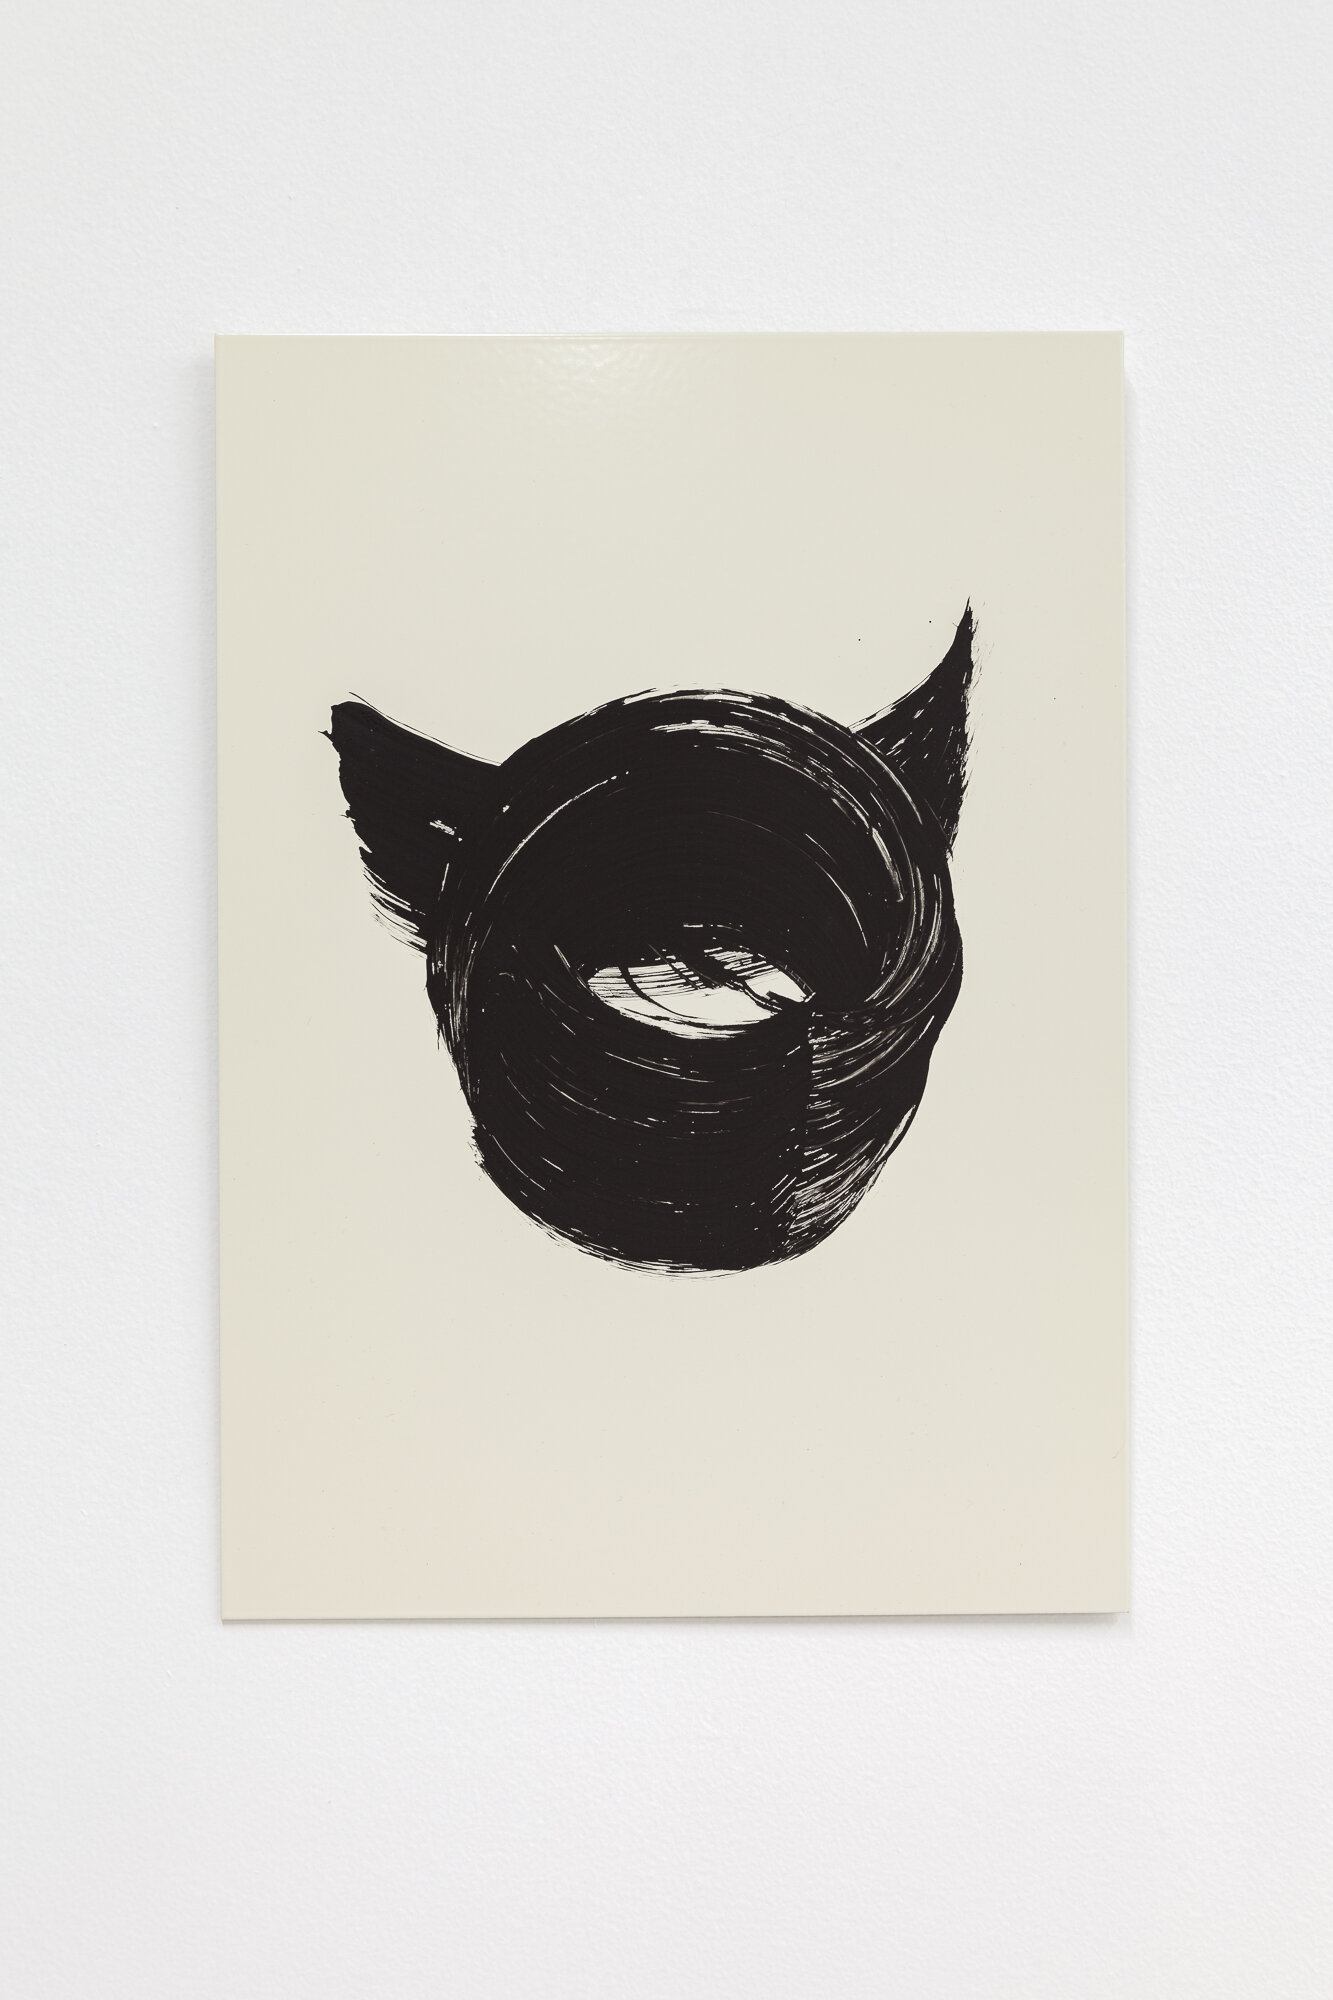 Image: Sarah Ortmeyer,  DIABOLUS,  2019. Gesso on metal.  INFERNO CHICAGO , curated by Stephanie Cristello, Chicago Manual Style (Chicago, IL). Copyright Sarah Ortmeyer. Courtesy of Dvir, Tel Aviv / Brussels. Photographer: Robert Chase Heishman.